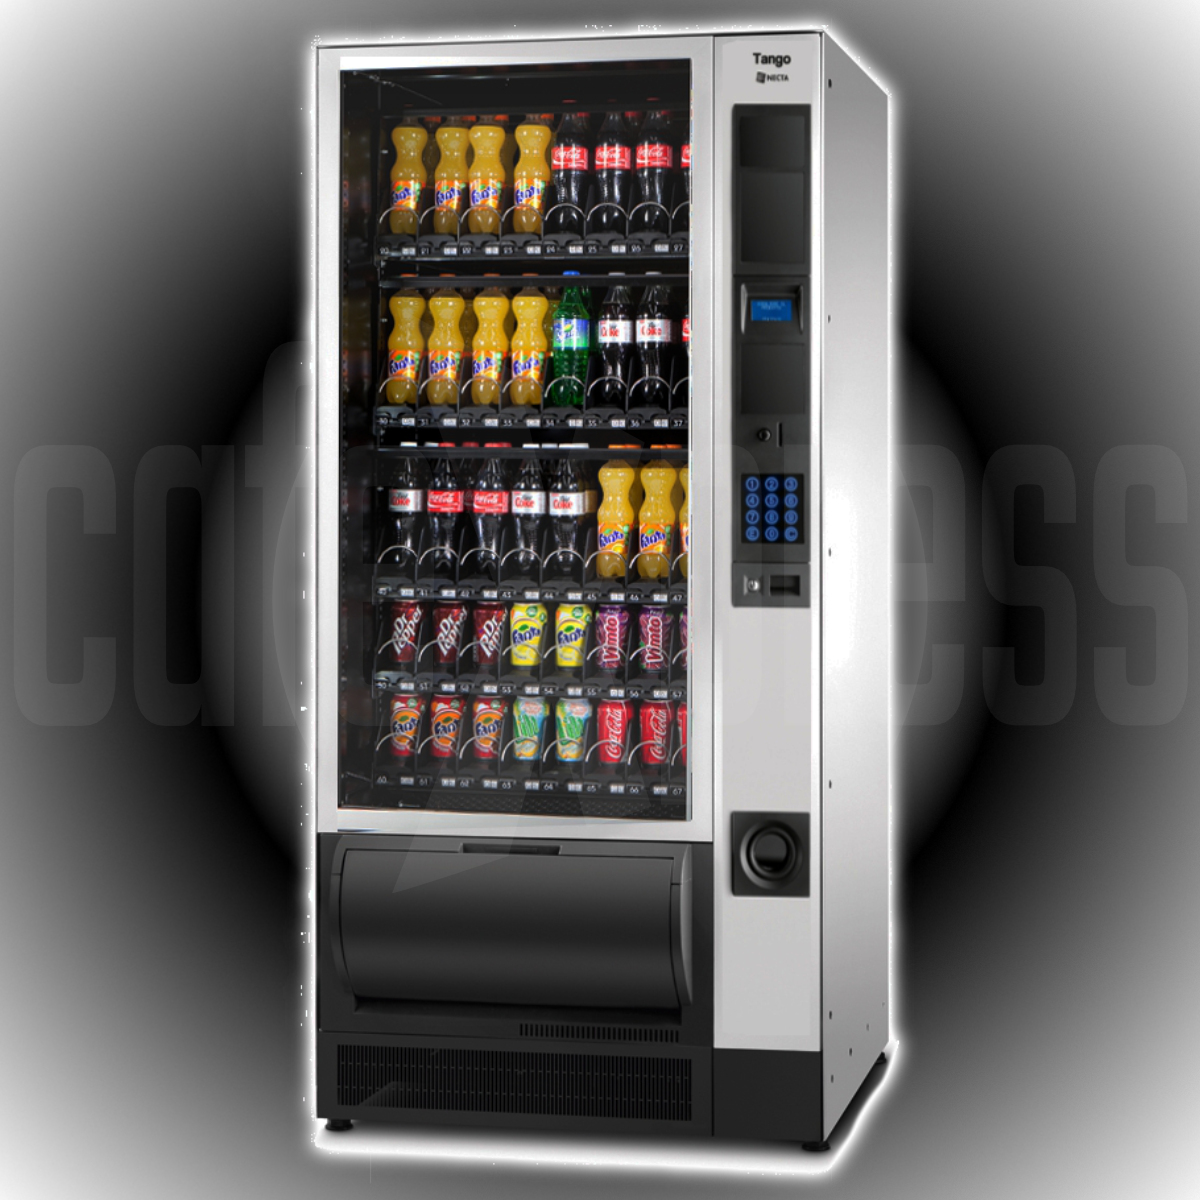 Necta TANGO 5-40 Cold Can & Bottle Machine